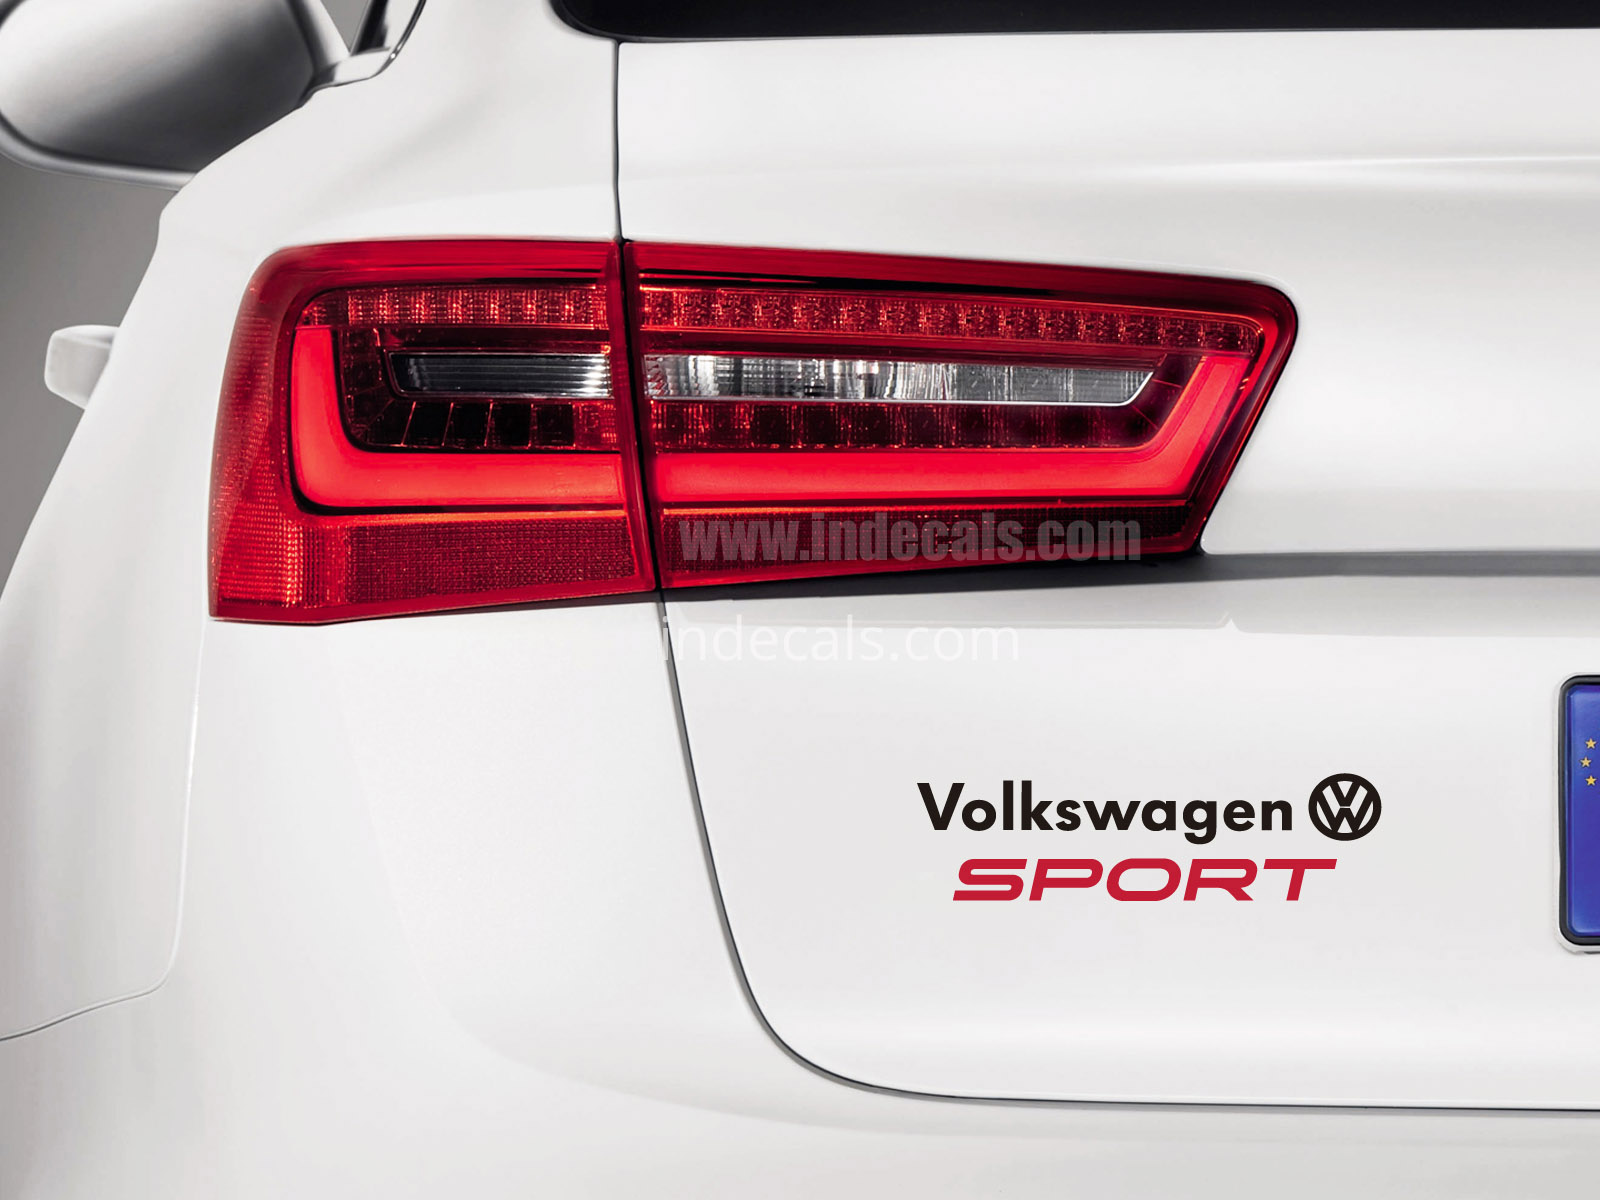 1 x Volkswagen Sports Sticker for Trunk - Black & Red